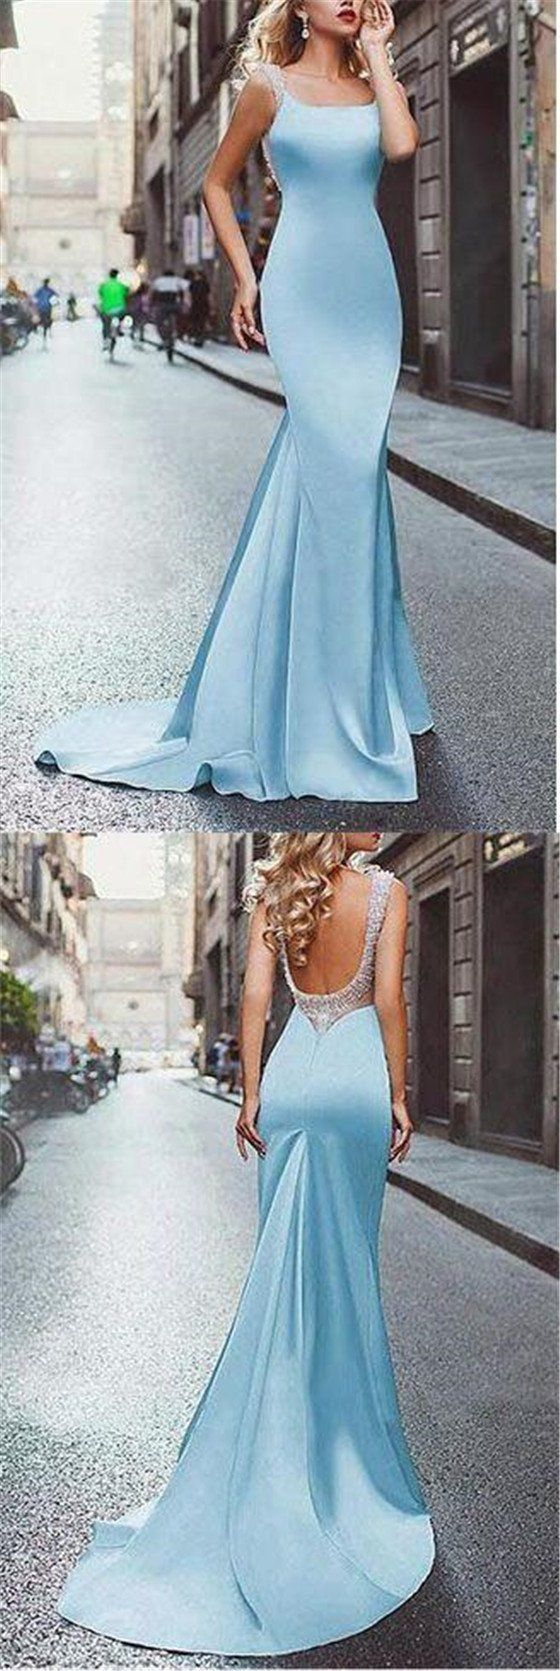 Elegant blue square neckline open back long mermaid prom dresses